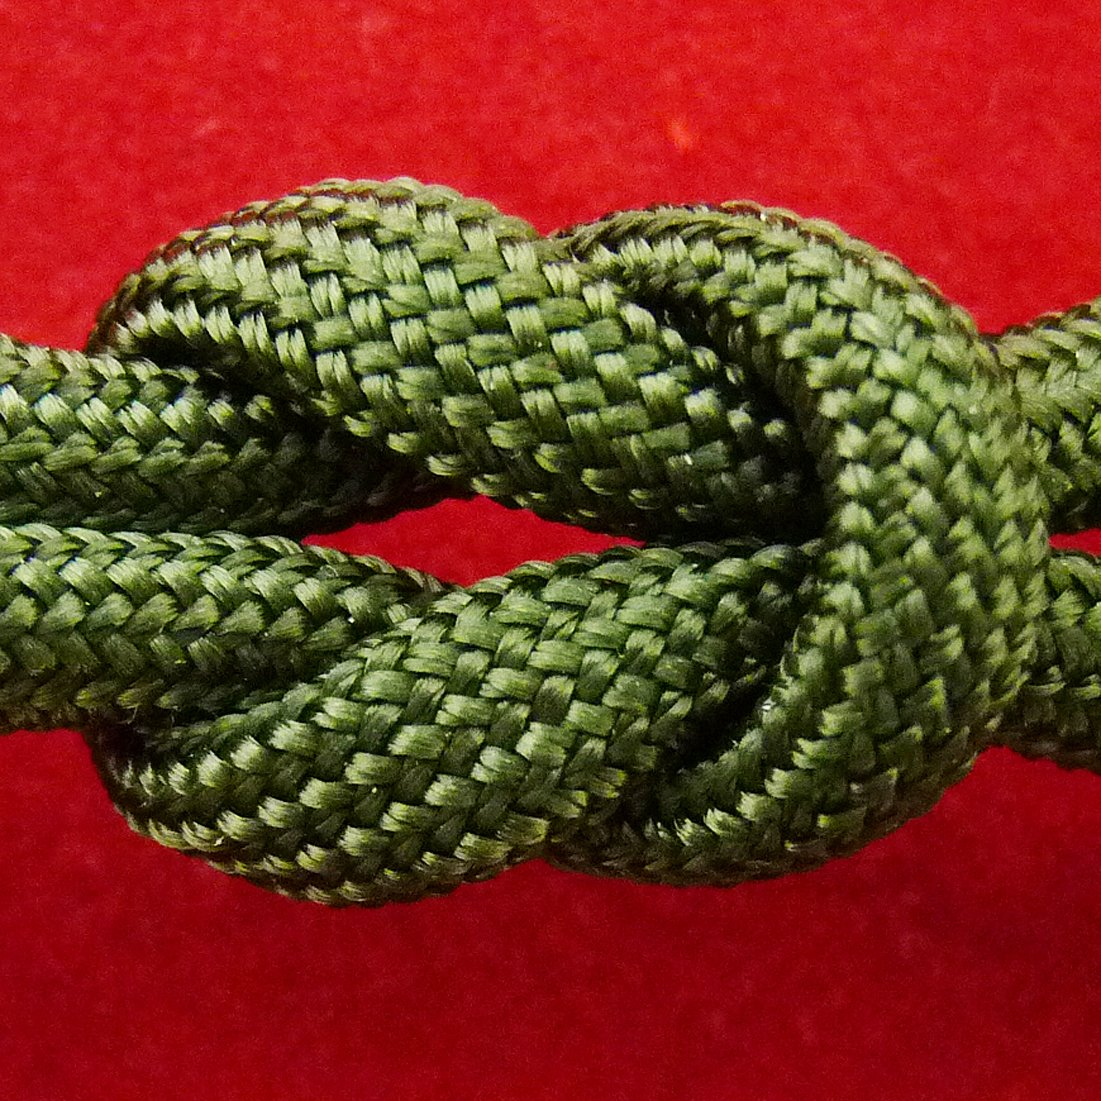 MilSpec Paracord Camo Green 483, 110 ft. Hank, Military Survival Braided Parachute 550 Cord. Use with Paracord Tools for Tent Camping, Hiking, Hunting Ropes, Bracelets & Projects. Plus 2 eBooks. by Paracord 550 Mil-Spec (TM) (Image #8)